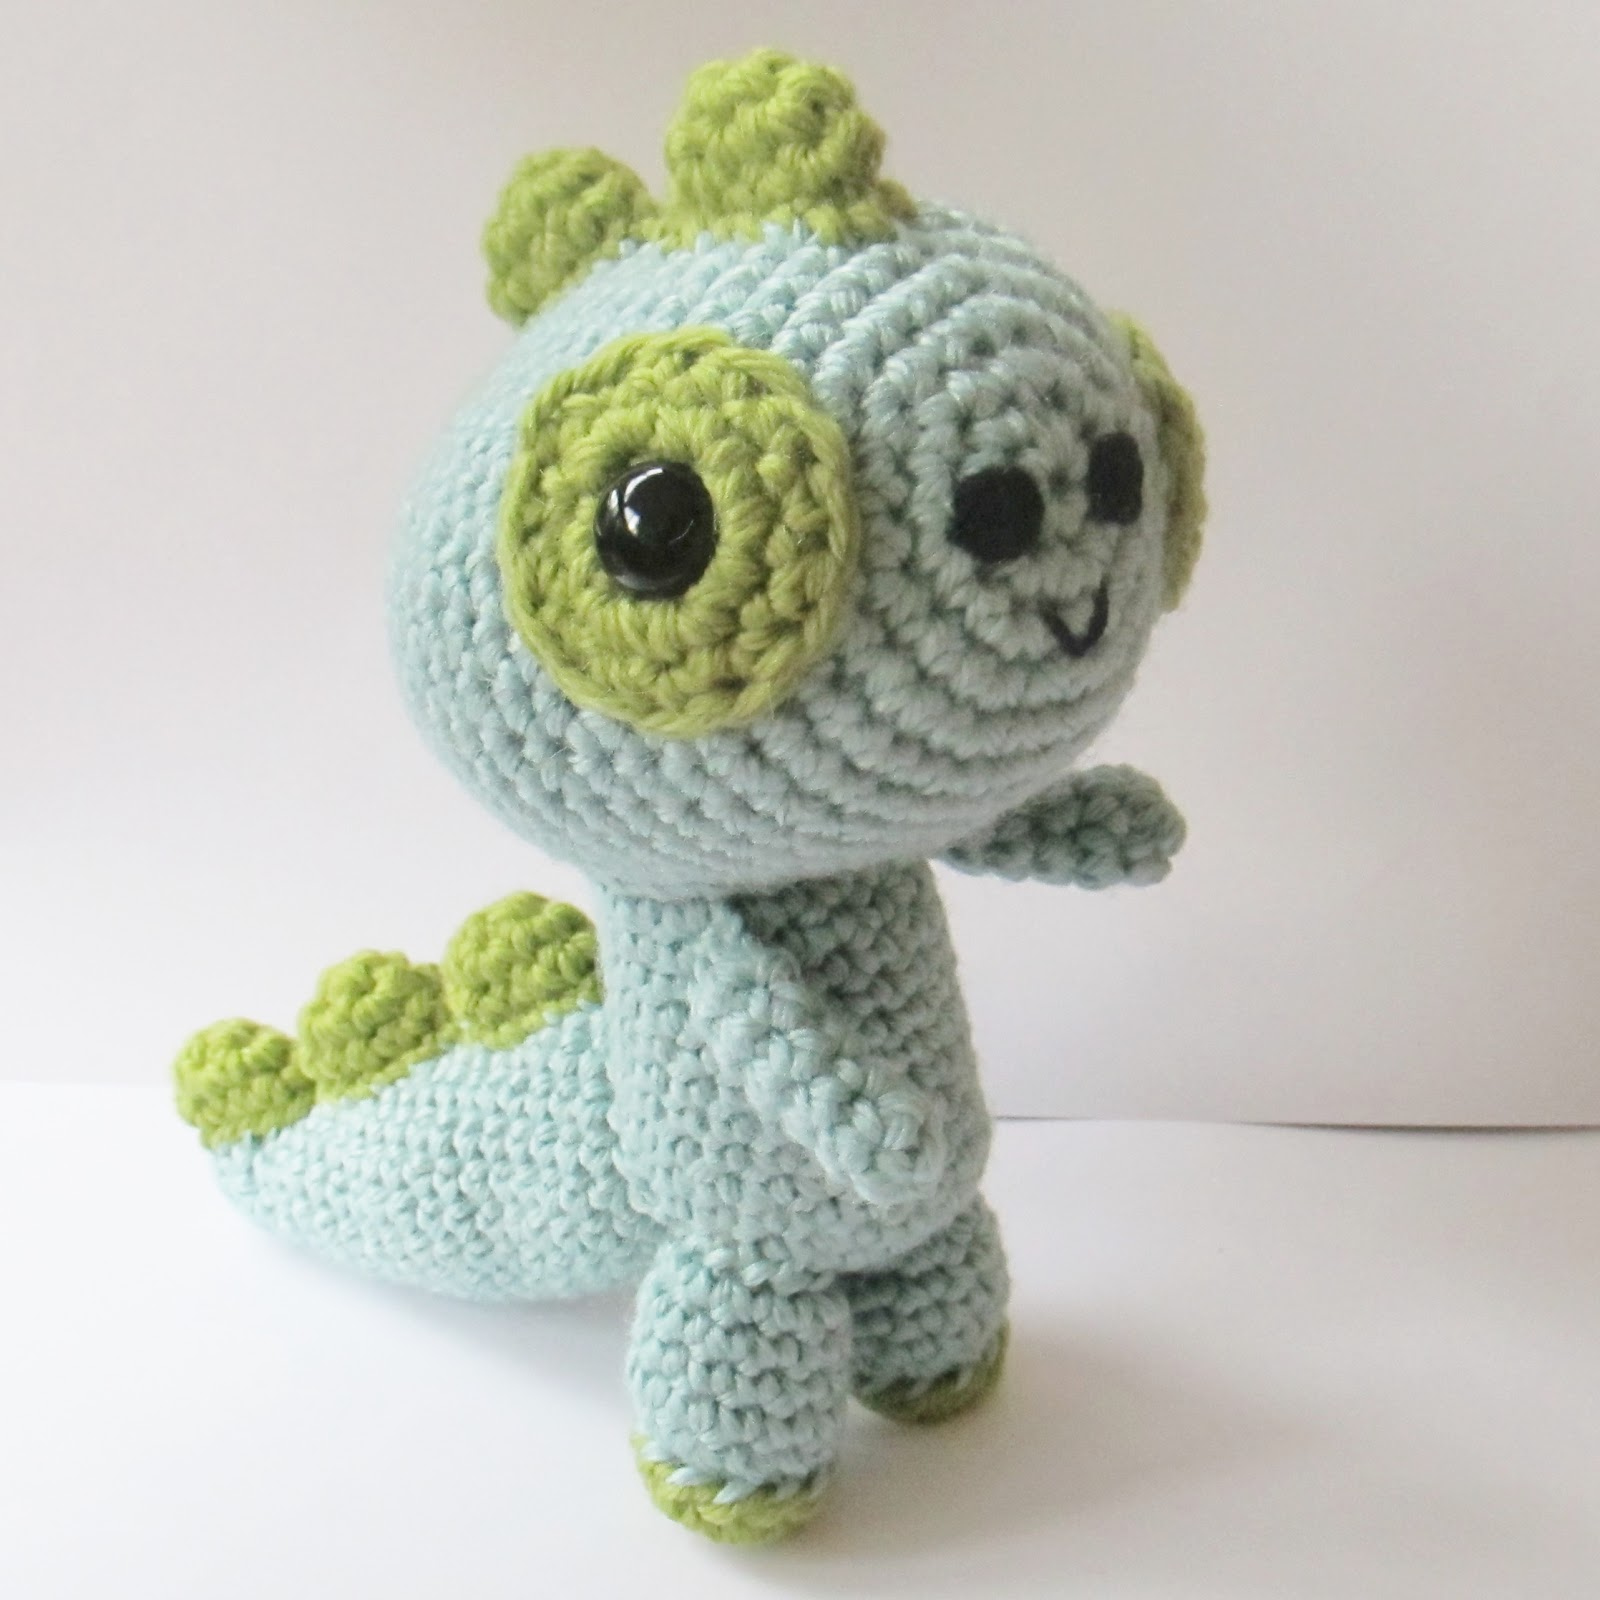 Crochet Amigurumi Head : Ana Paulas Amigurumi Patterns & Random Cuteness ...